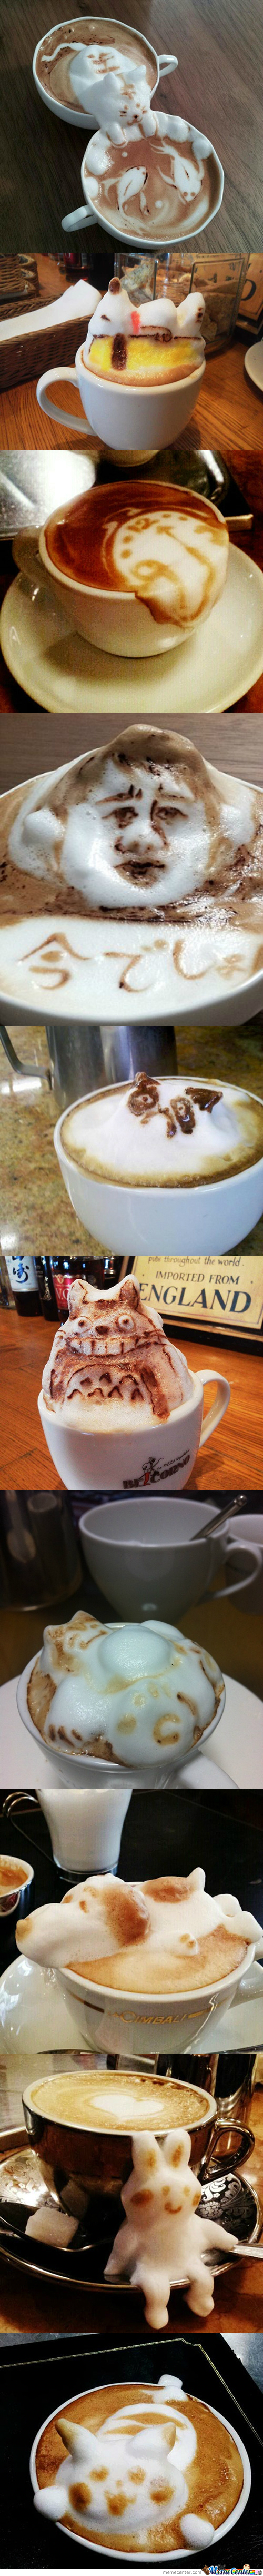 Amazing Latte Art Pictures